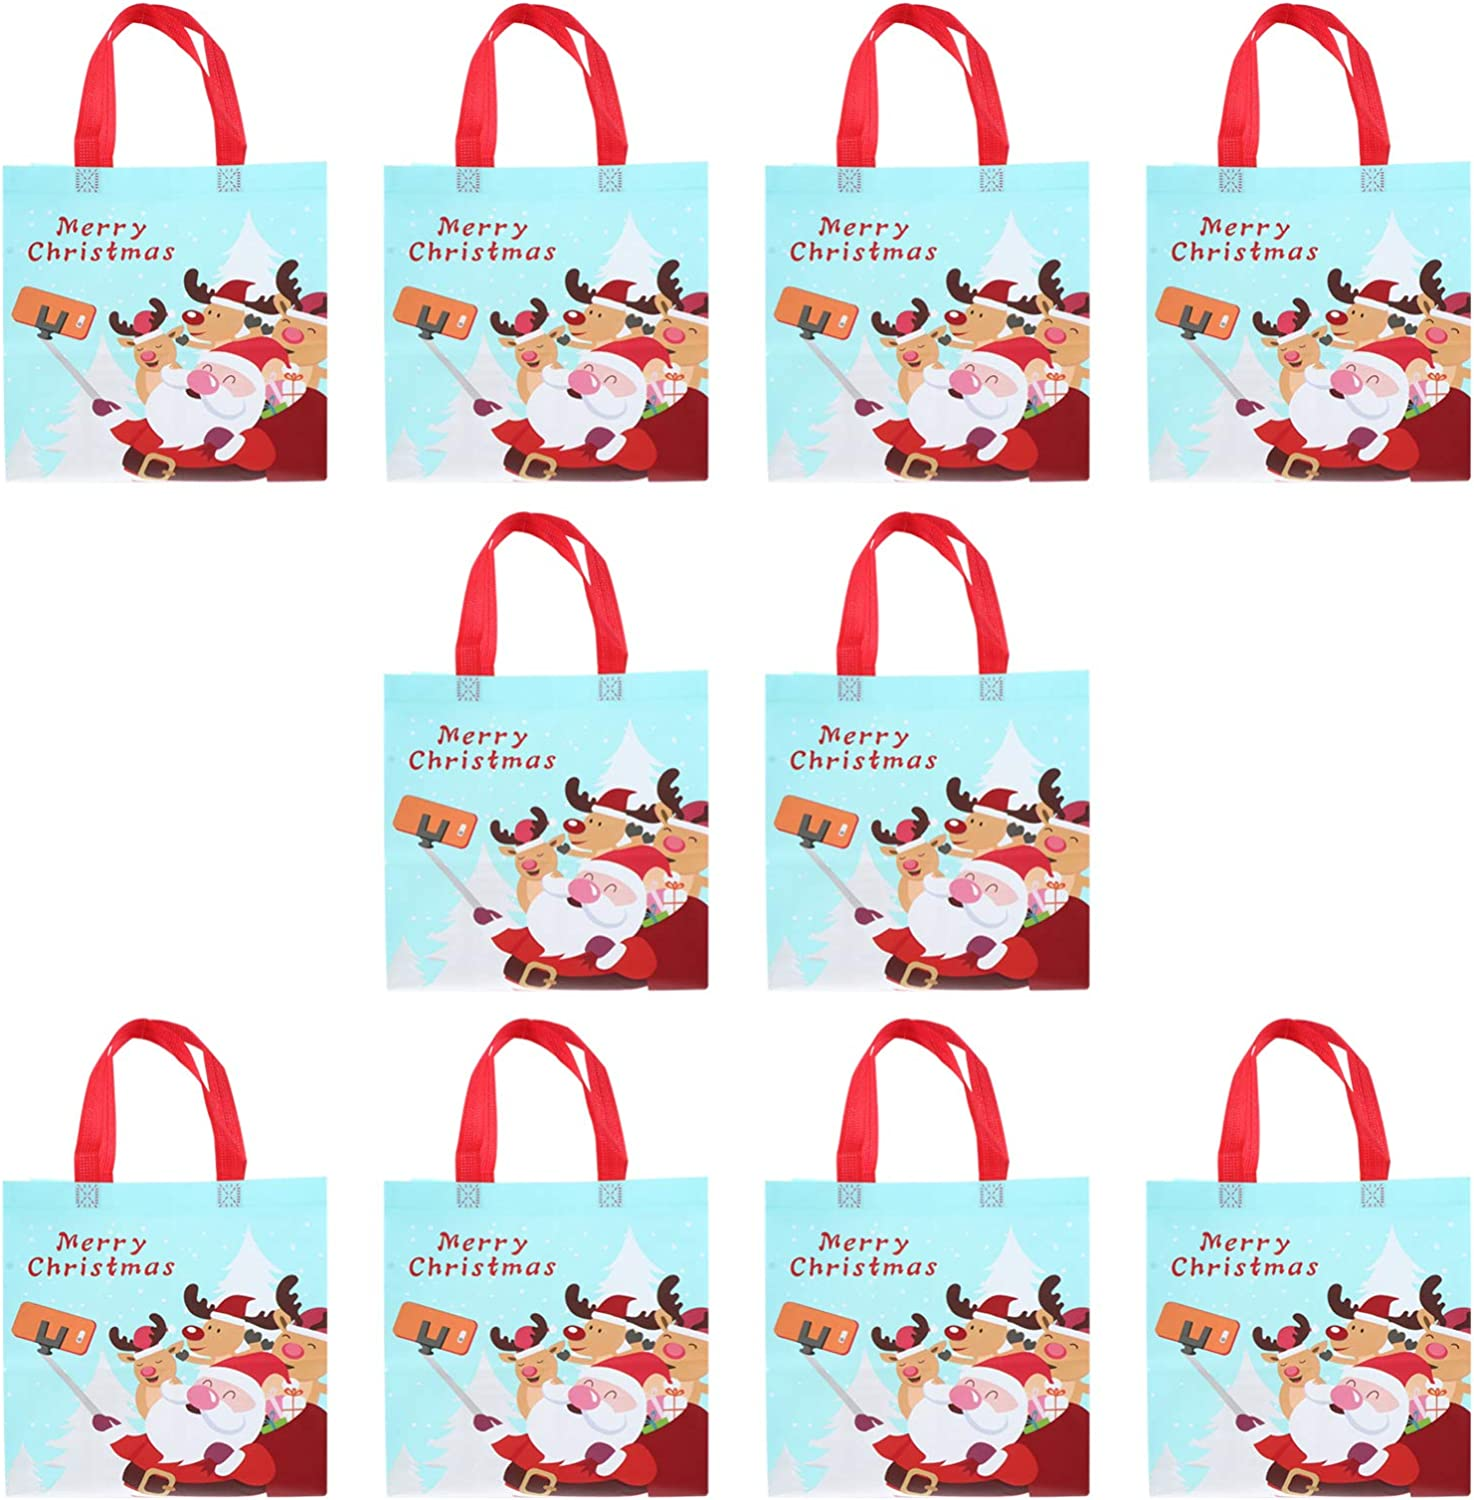 VALICLUD Recommended 10Pcs Christmas Tote Ranking TOP5 Bags Holiday Grocery Bag Nonwovens